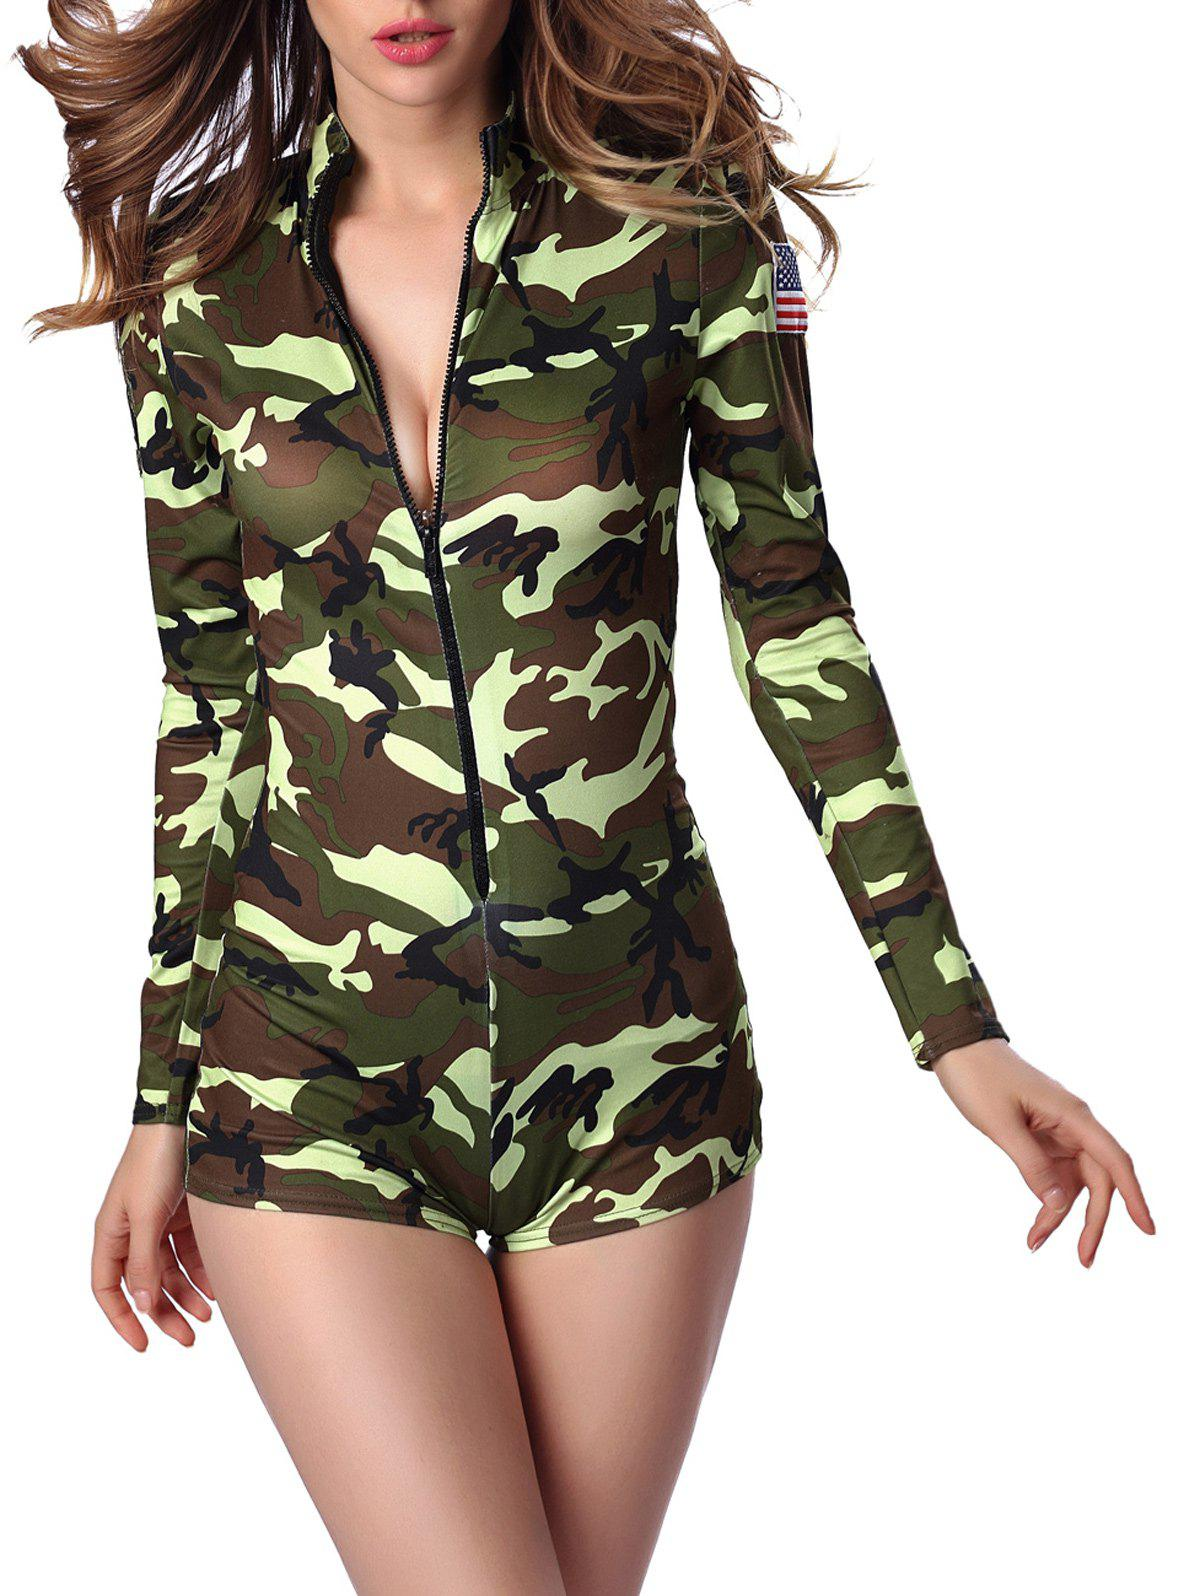 Letter Cap and Camo Printed Zipped Romper - GREEN M